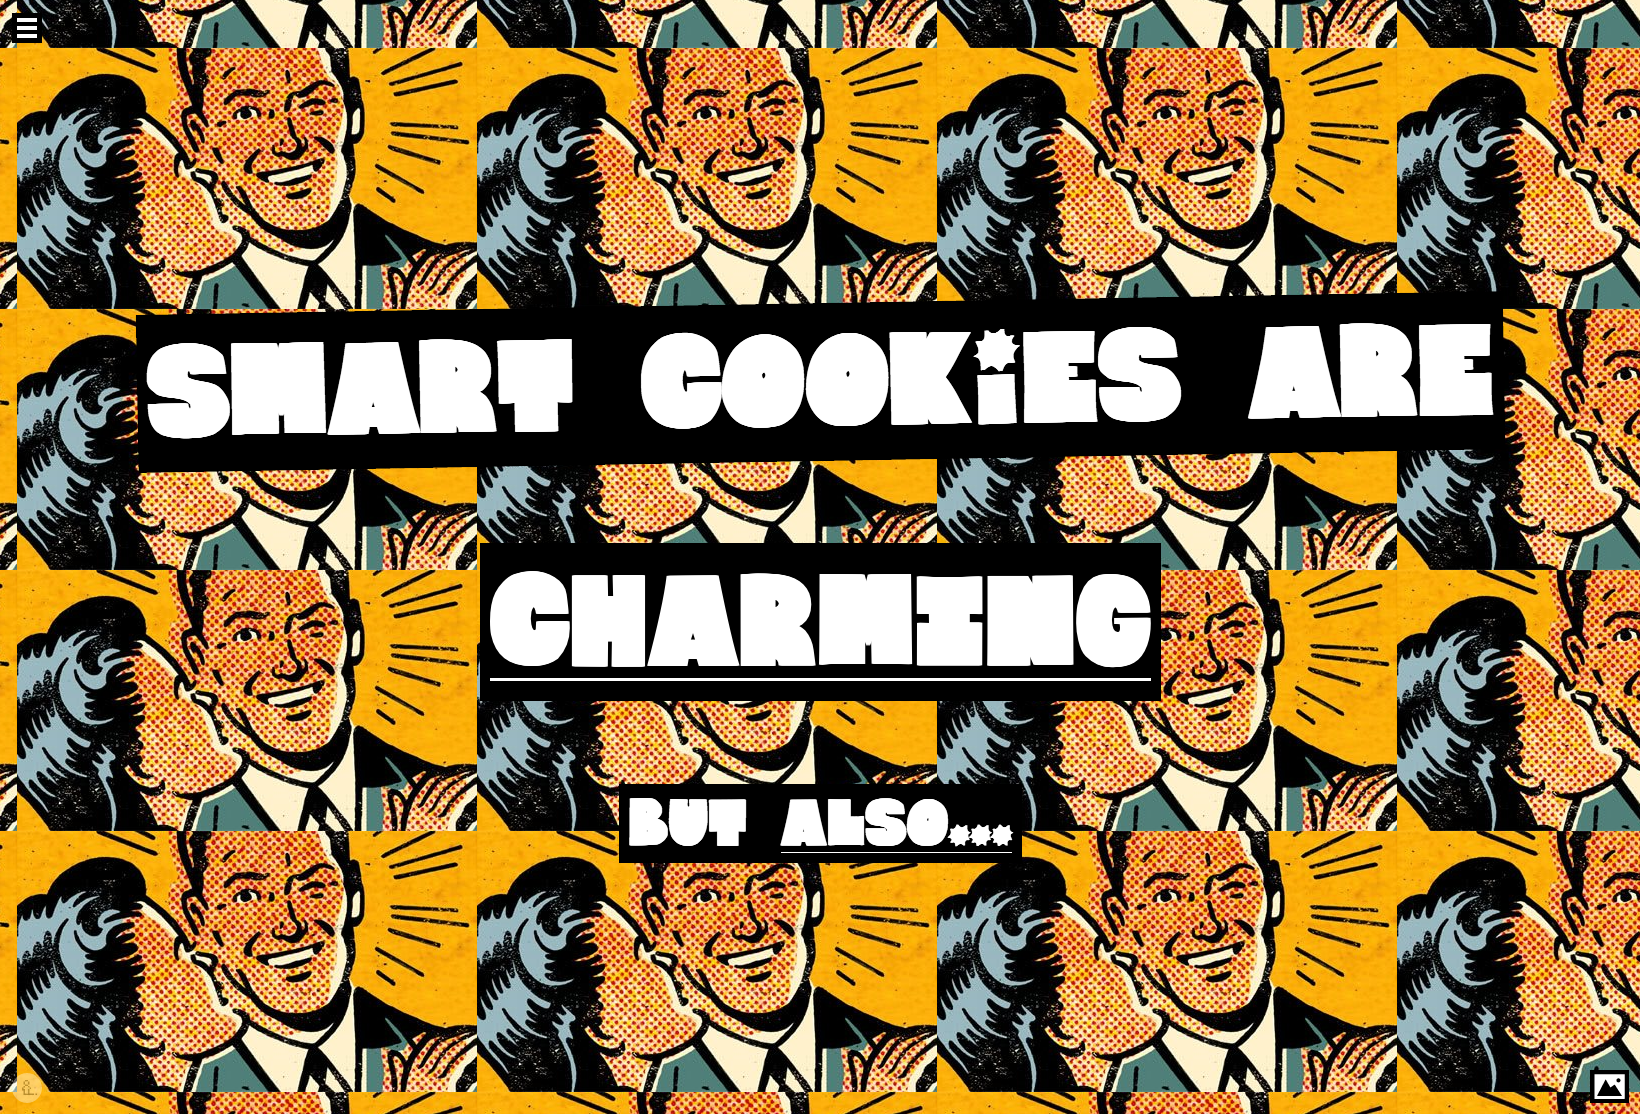 Smart Cookies are Charming